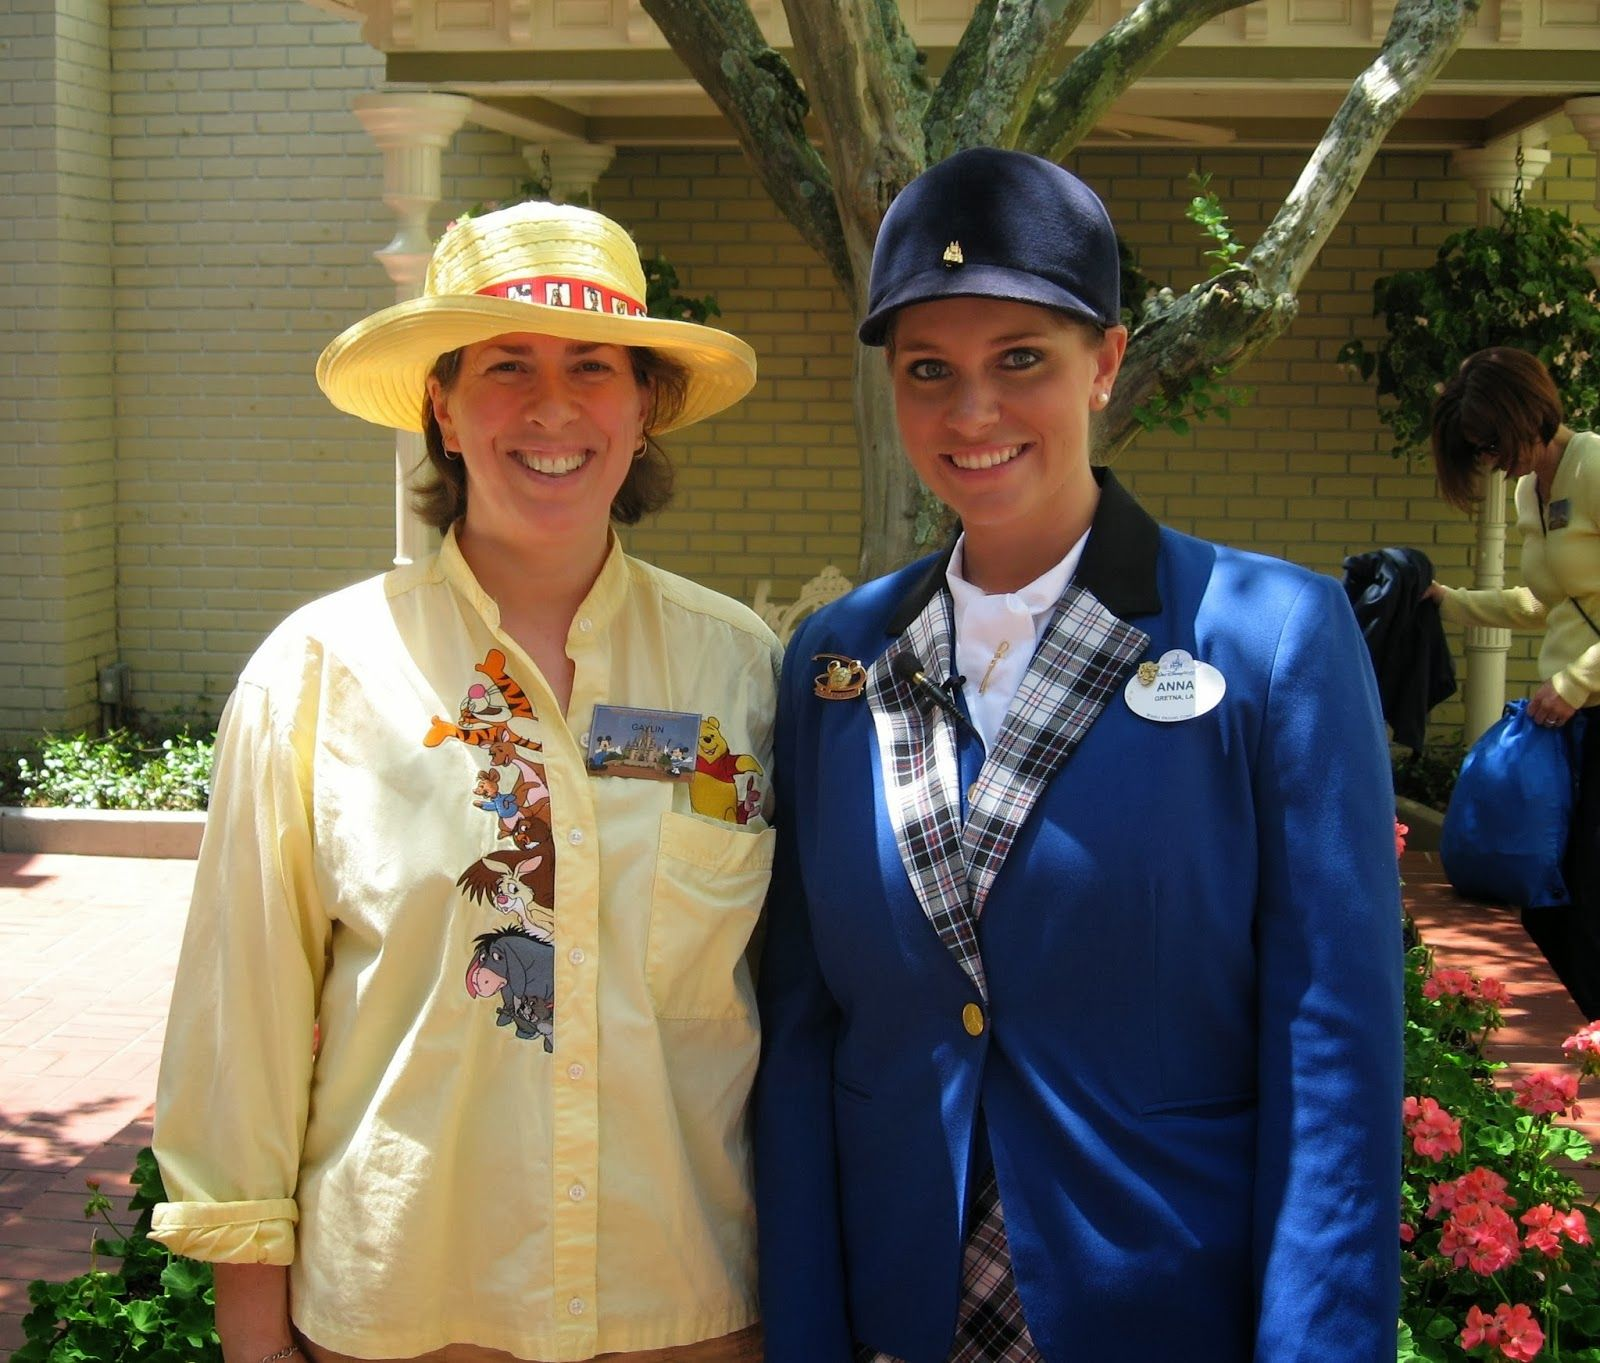 Disney Musings: Tour Guide: Story Behind the Photo